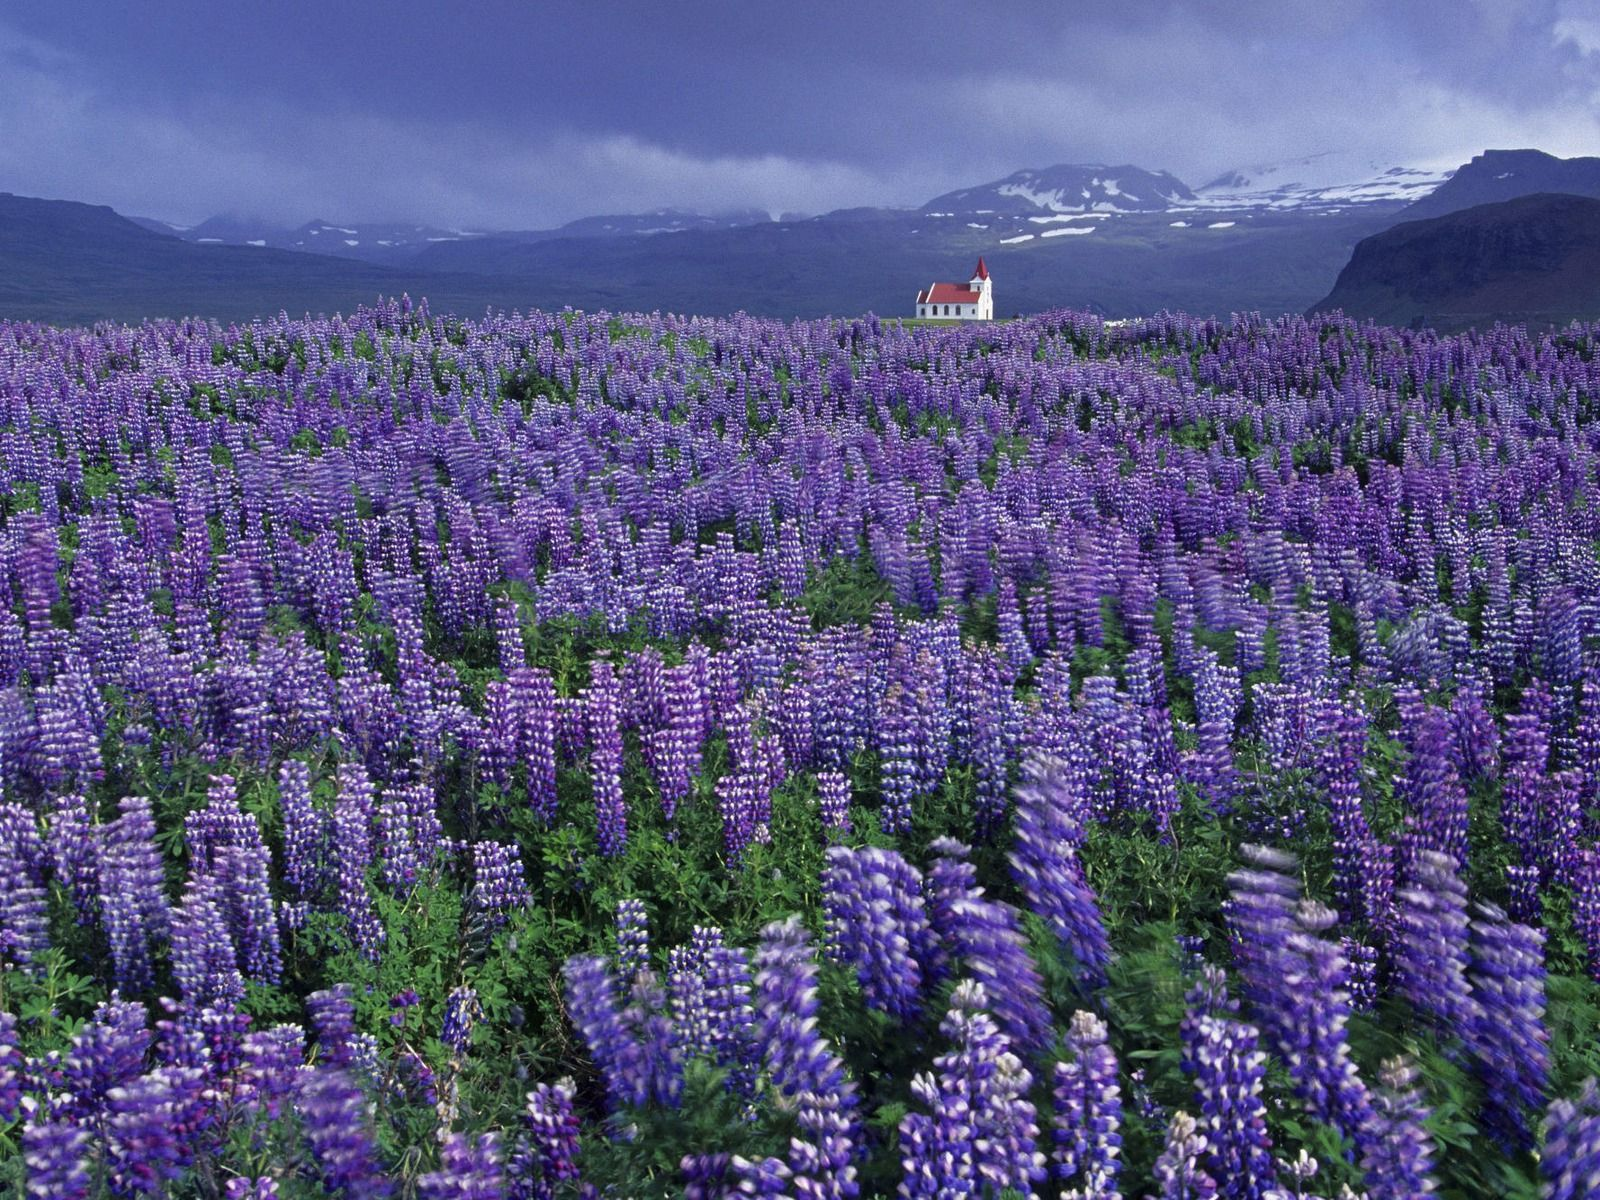 The Wild Lupine plant is a native plant that can be found